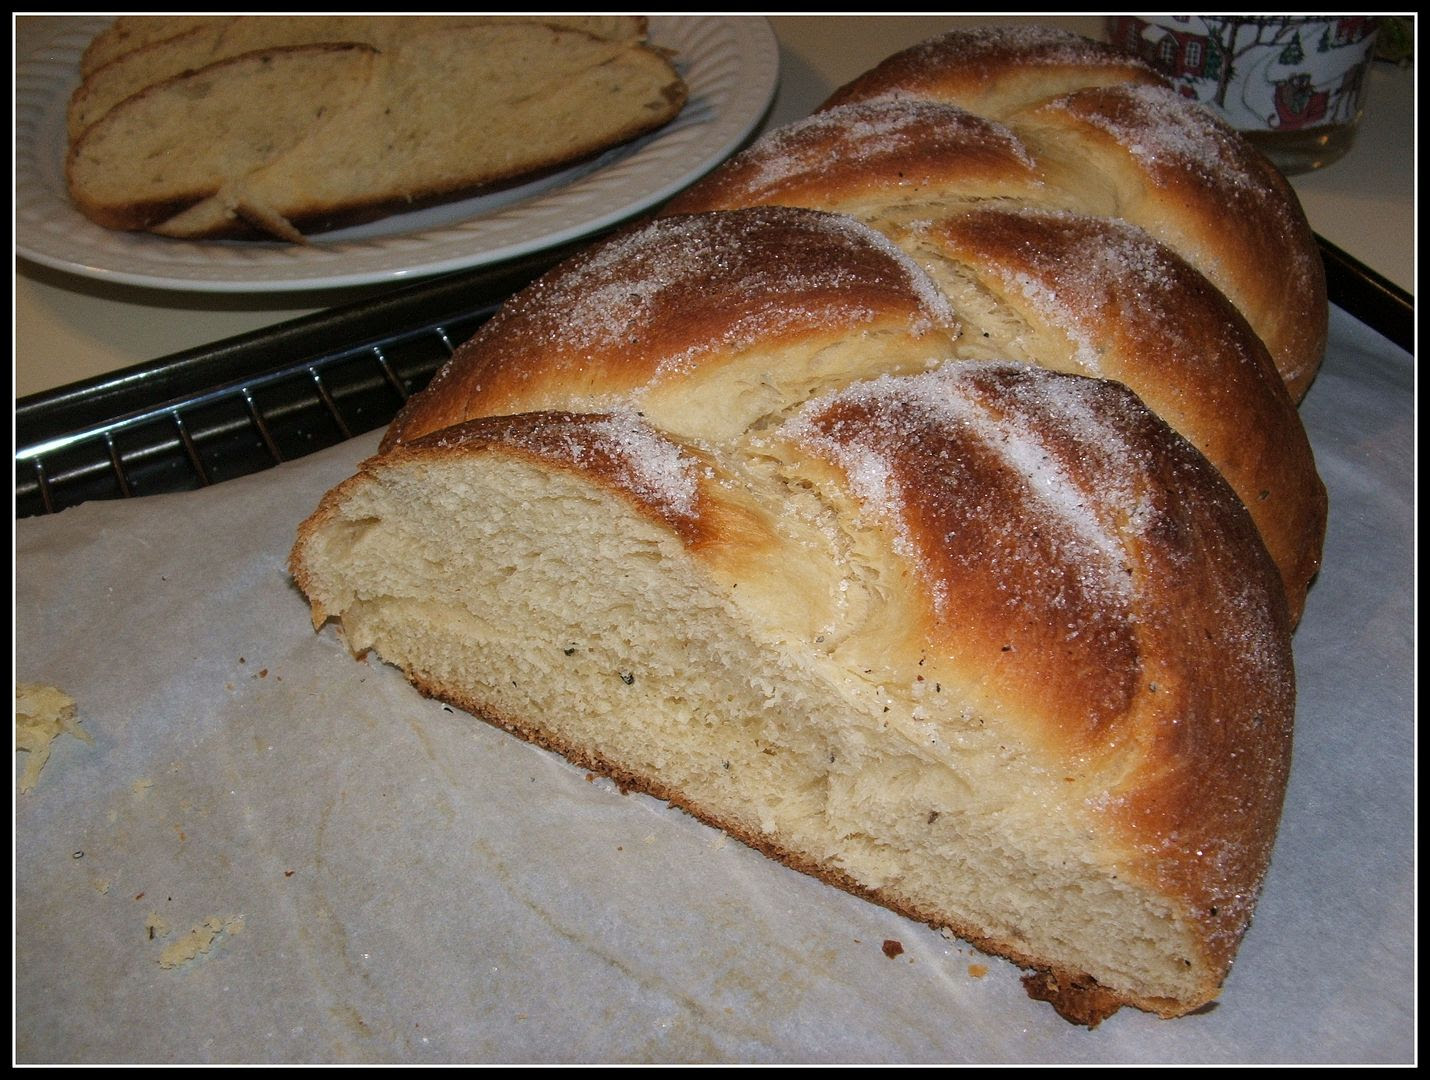 Cardamom Braid by Angie Ouellette-Tower for godsgrowinggarden.com photo 024_zpse2d1c723.jpg